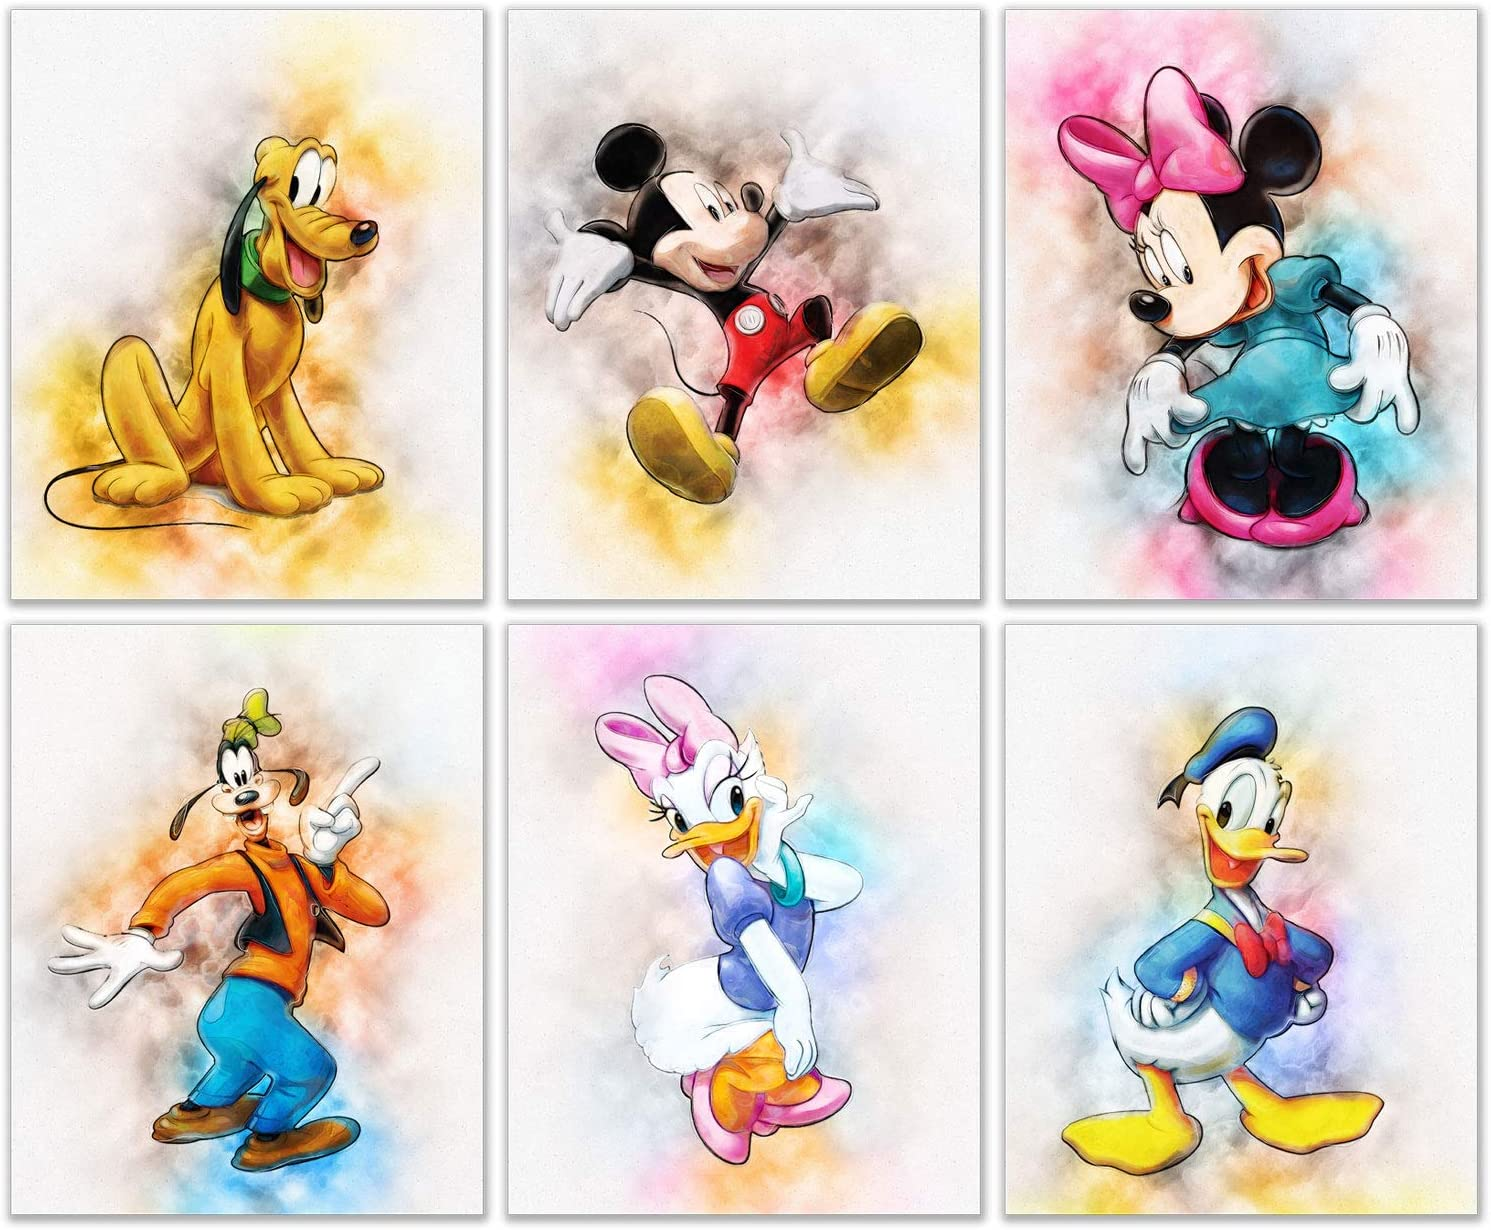 Mickey Mouse Original Watercolor Prints - Set of 6 Nursery Wall Art Decor (8 inches x 10 inches) - Minnie Donald Daisy Duck Pluto Goofy